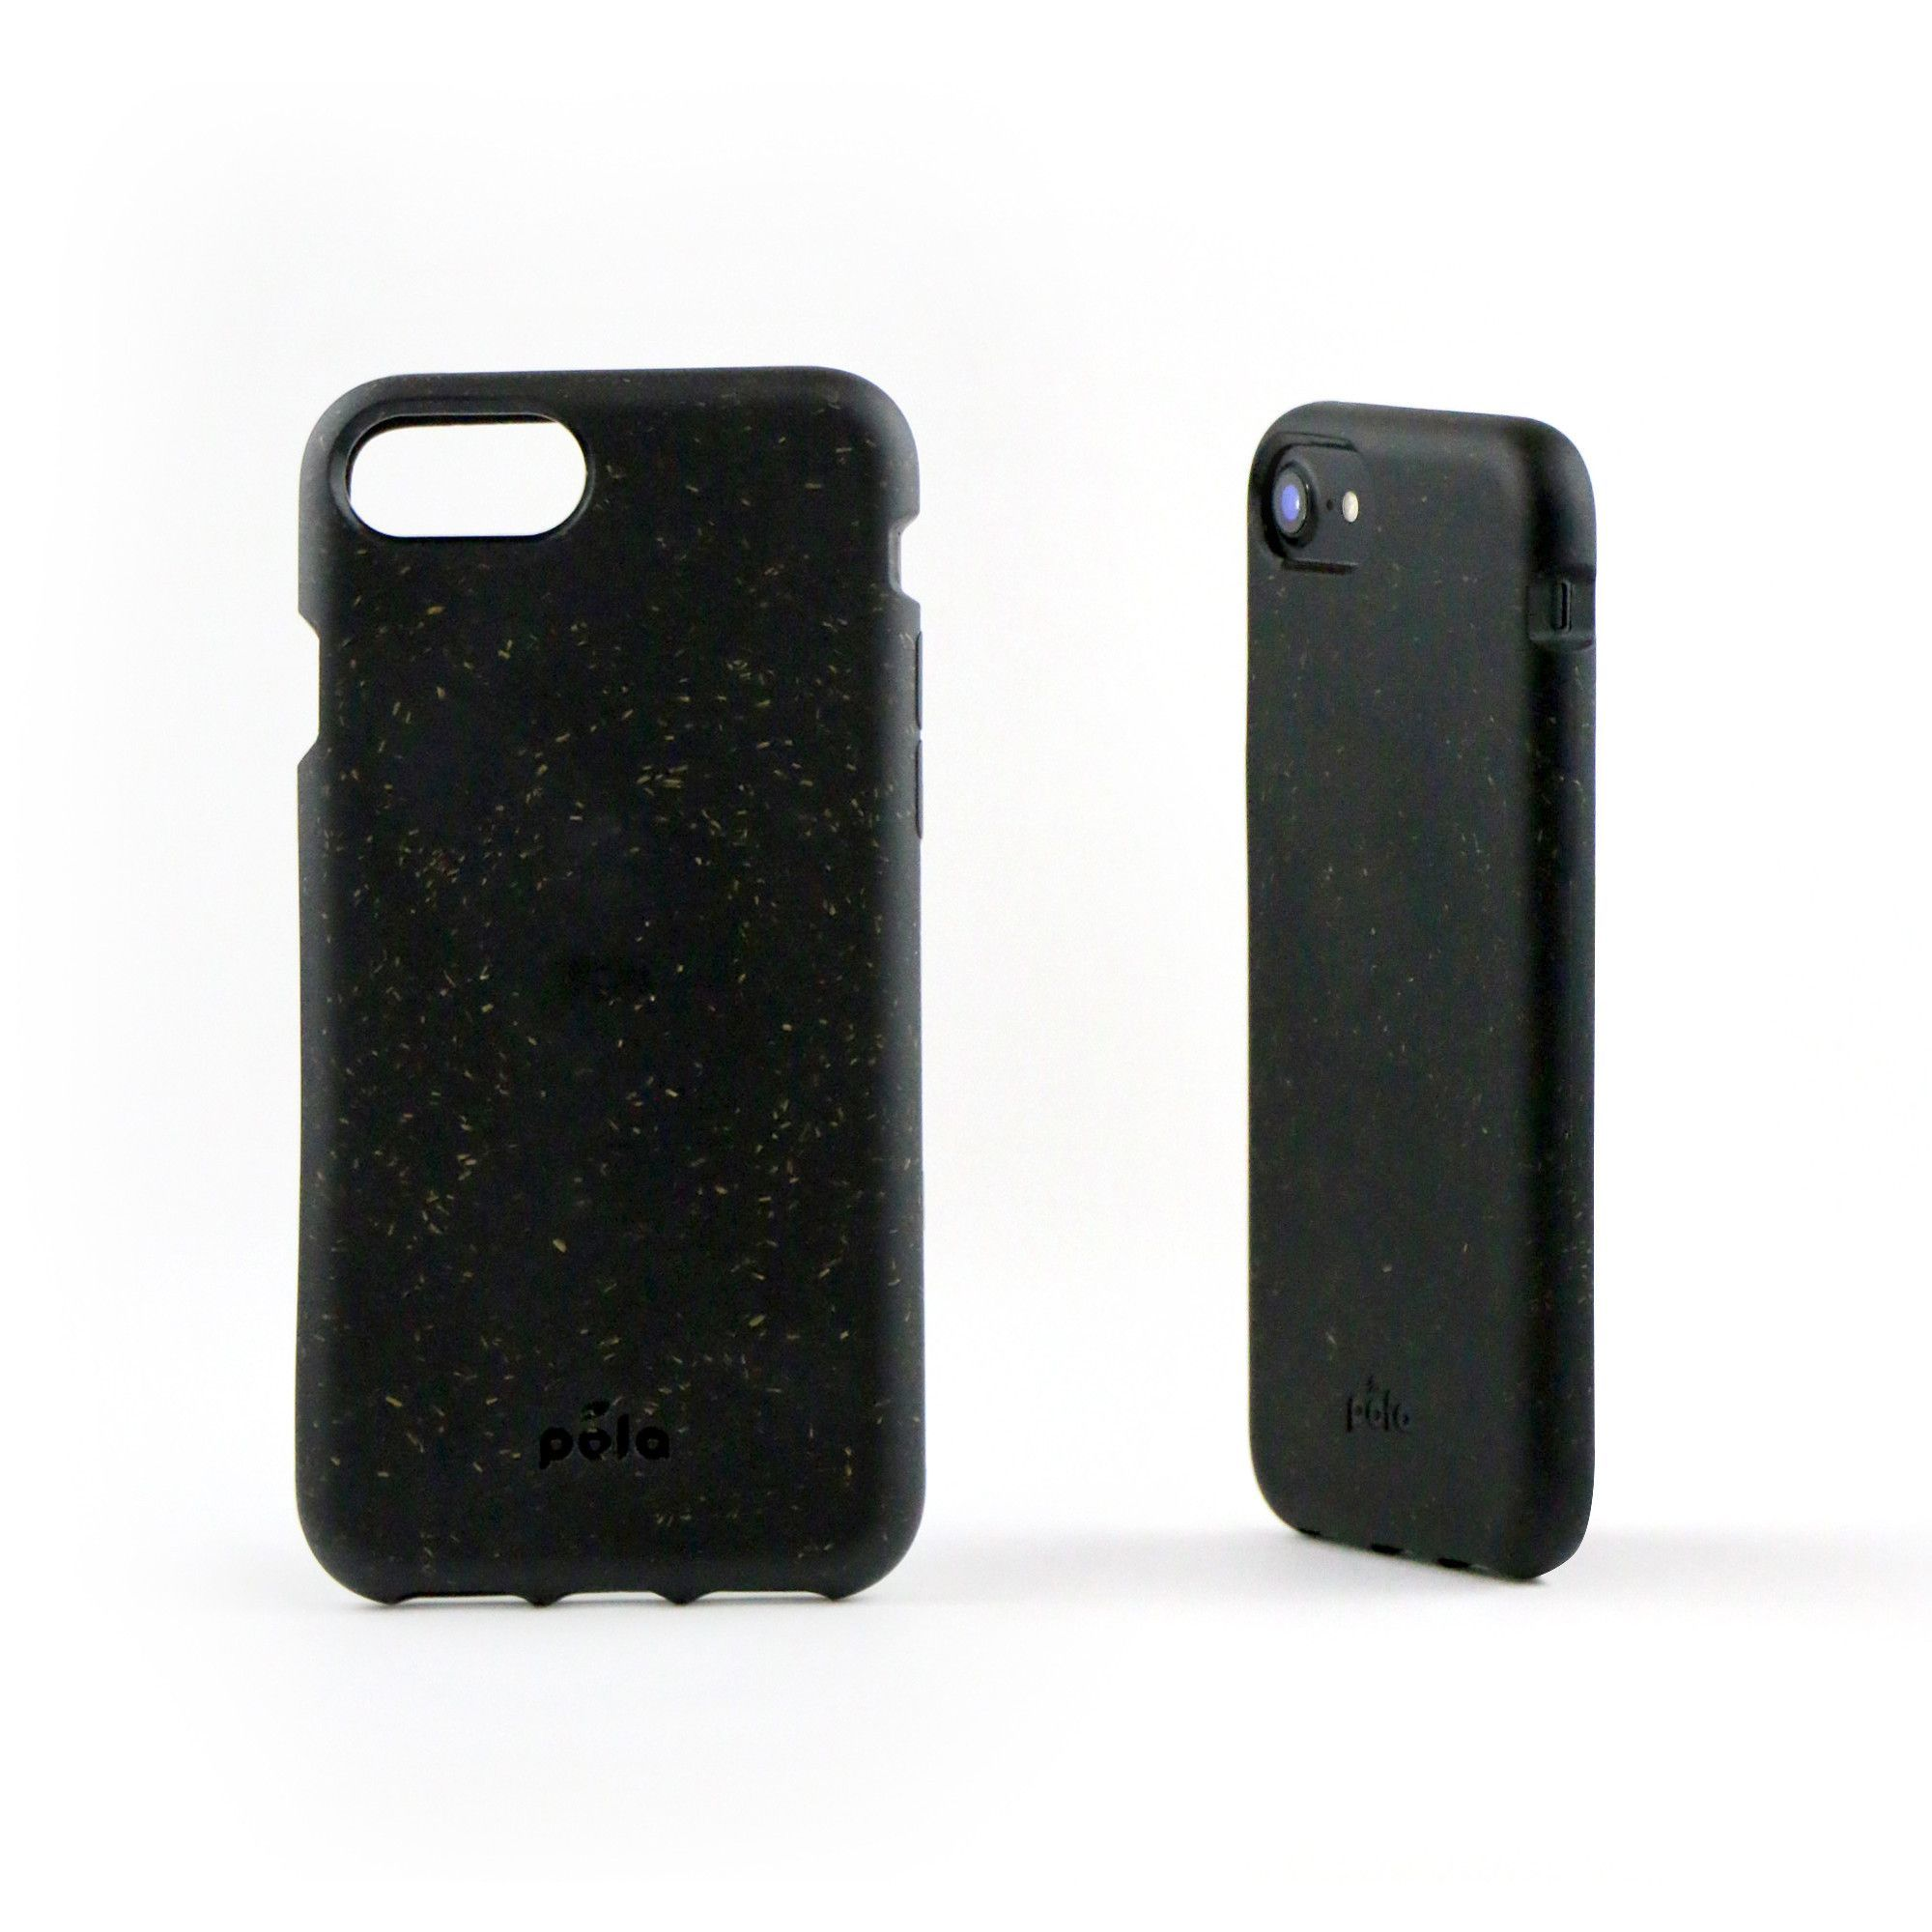 biodegradable phone case iphone 6